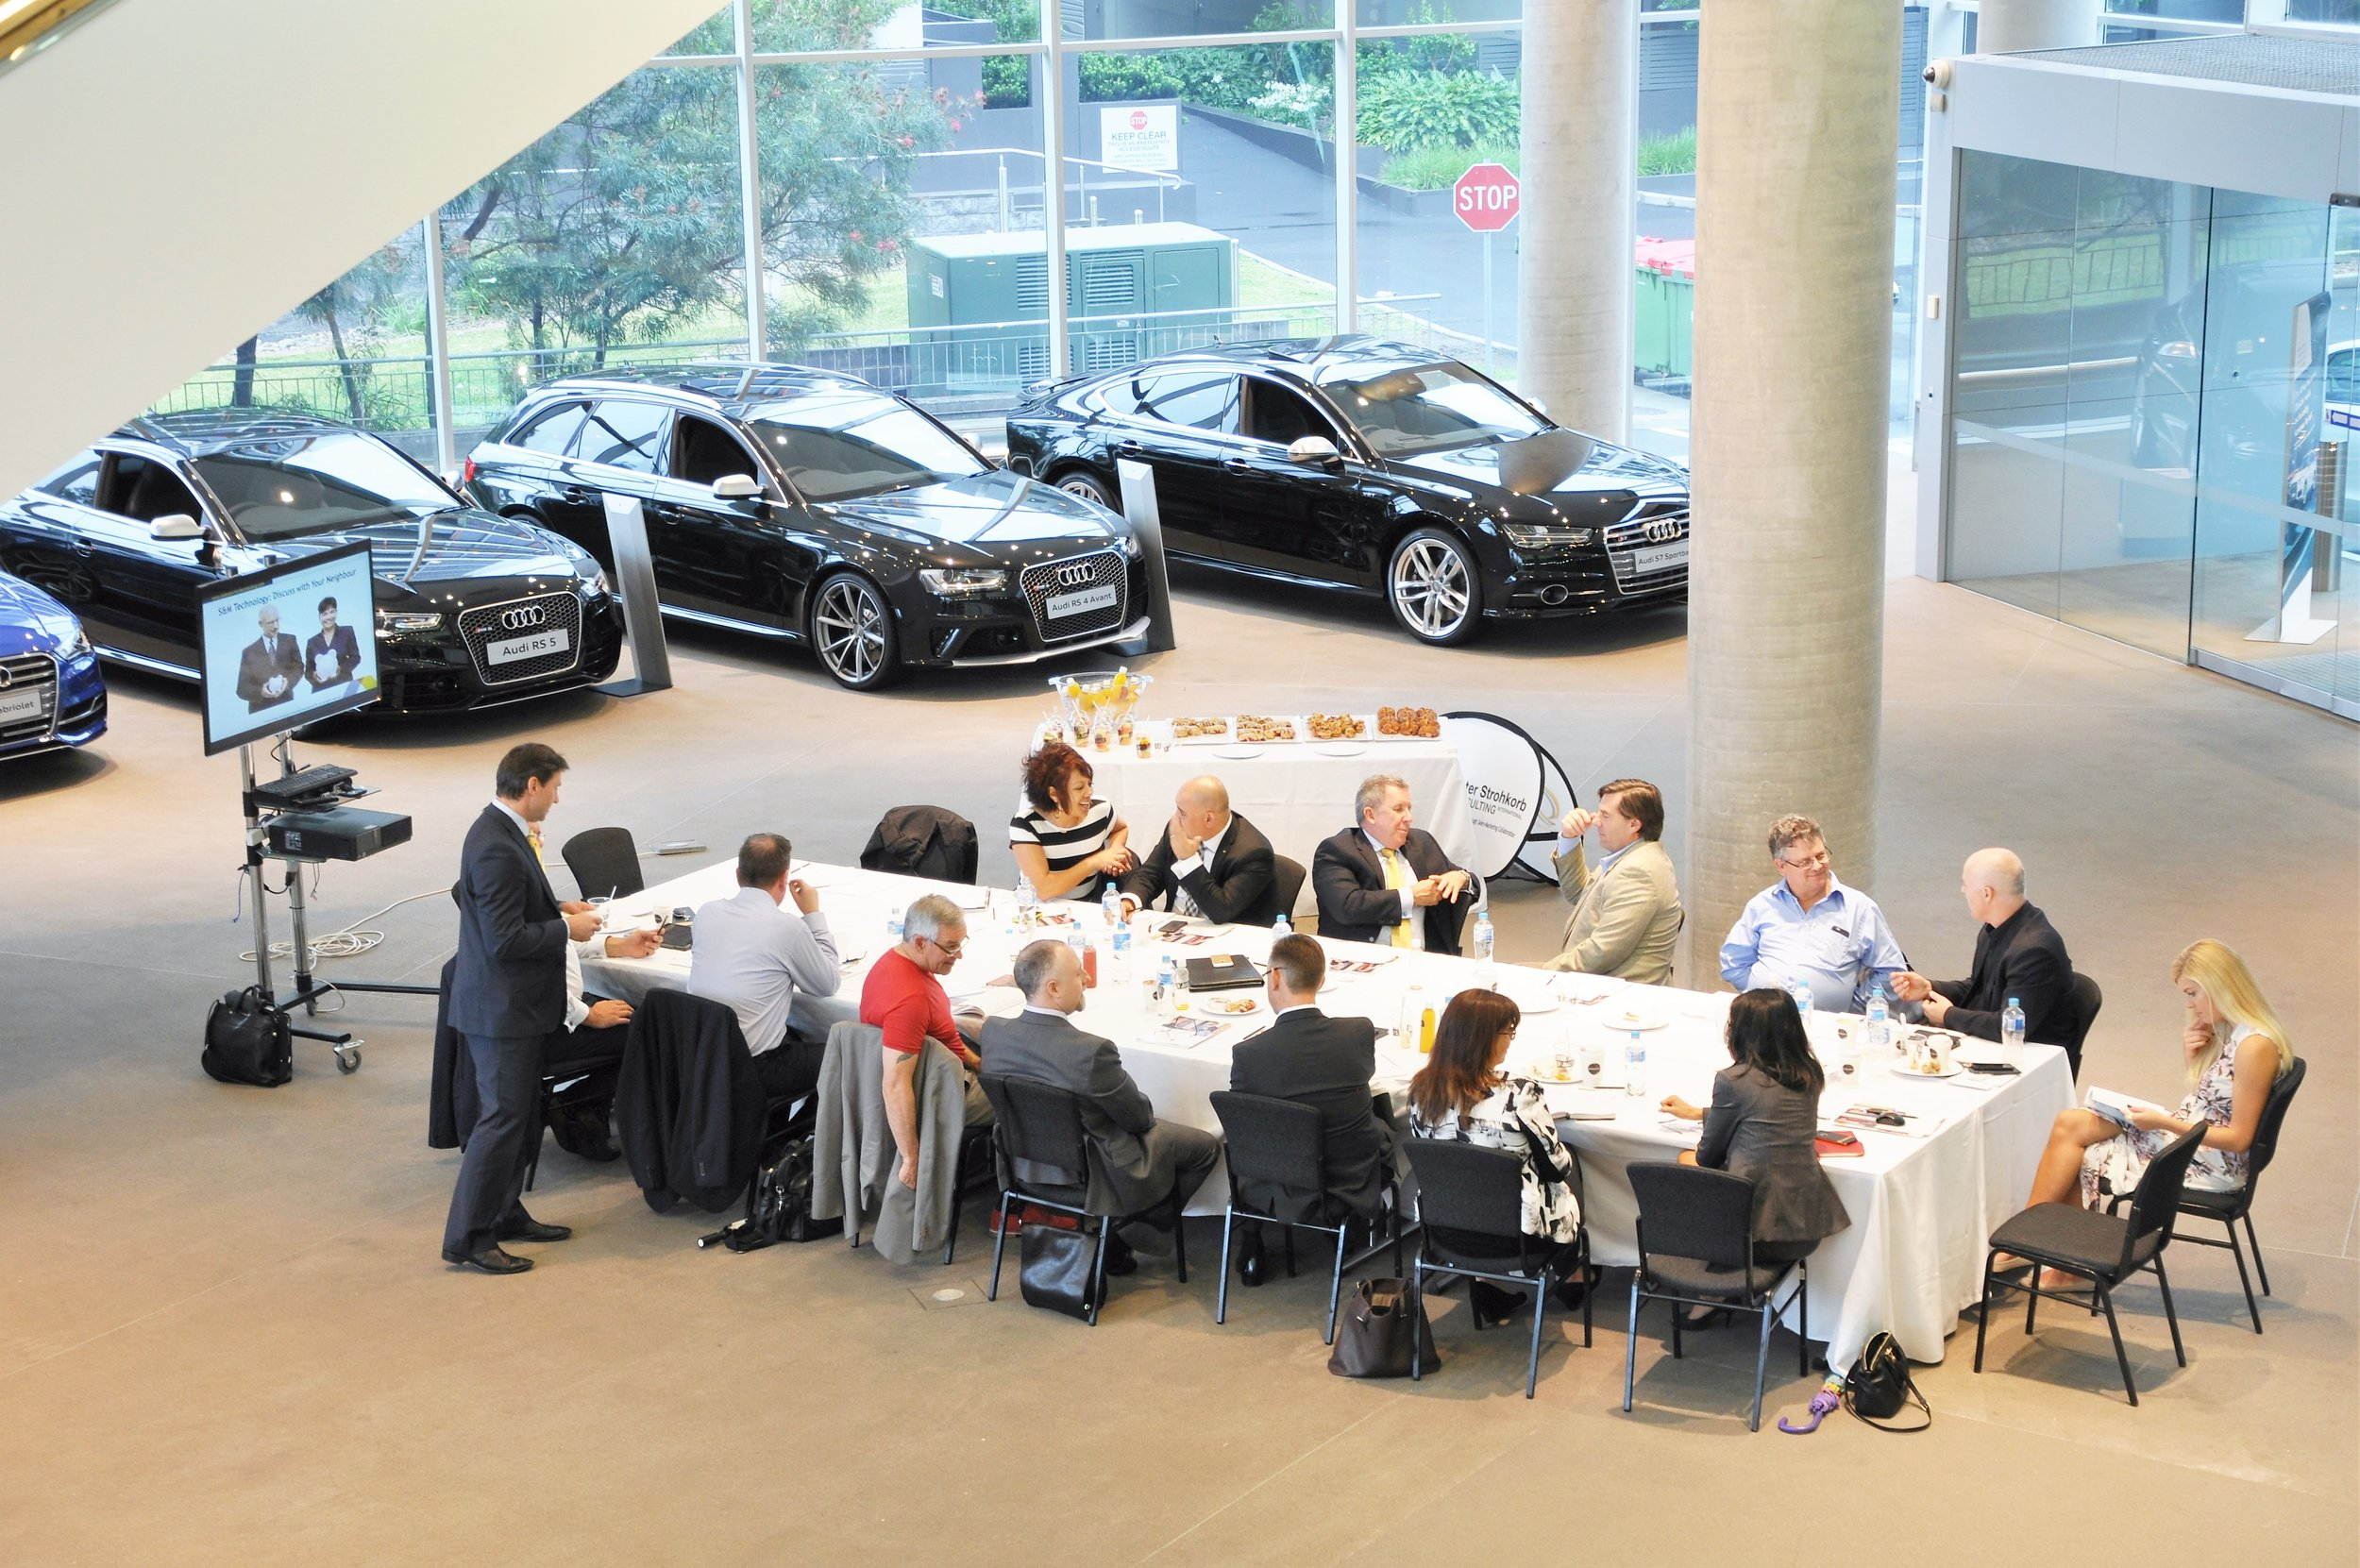 Peter Strohkorb conducts an executive workshop for a Luxury Car brand